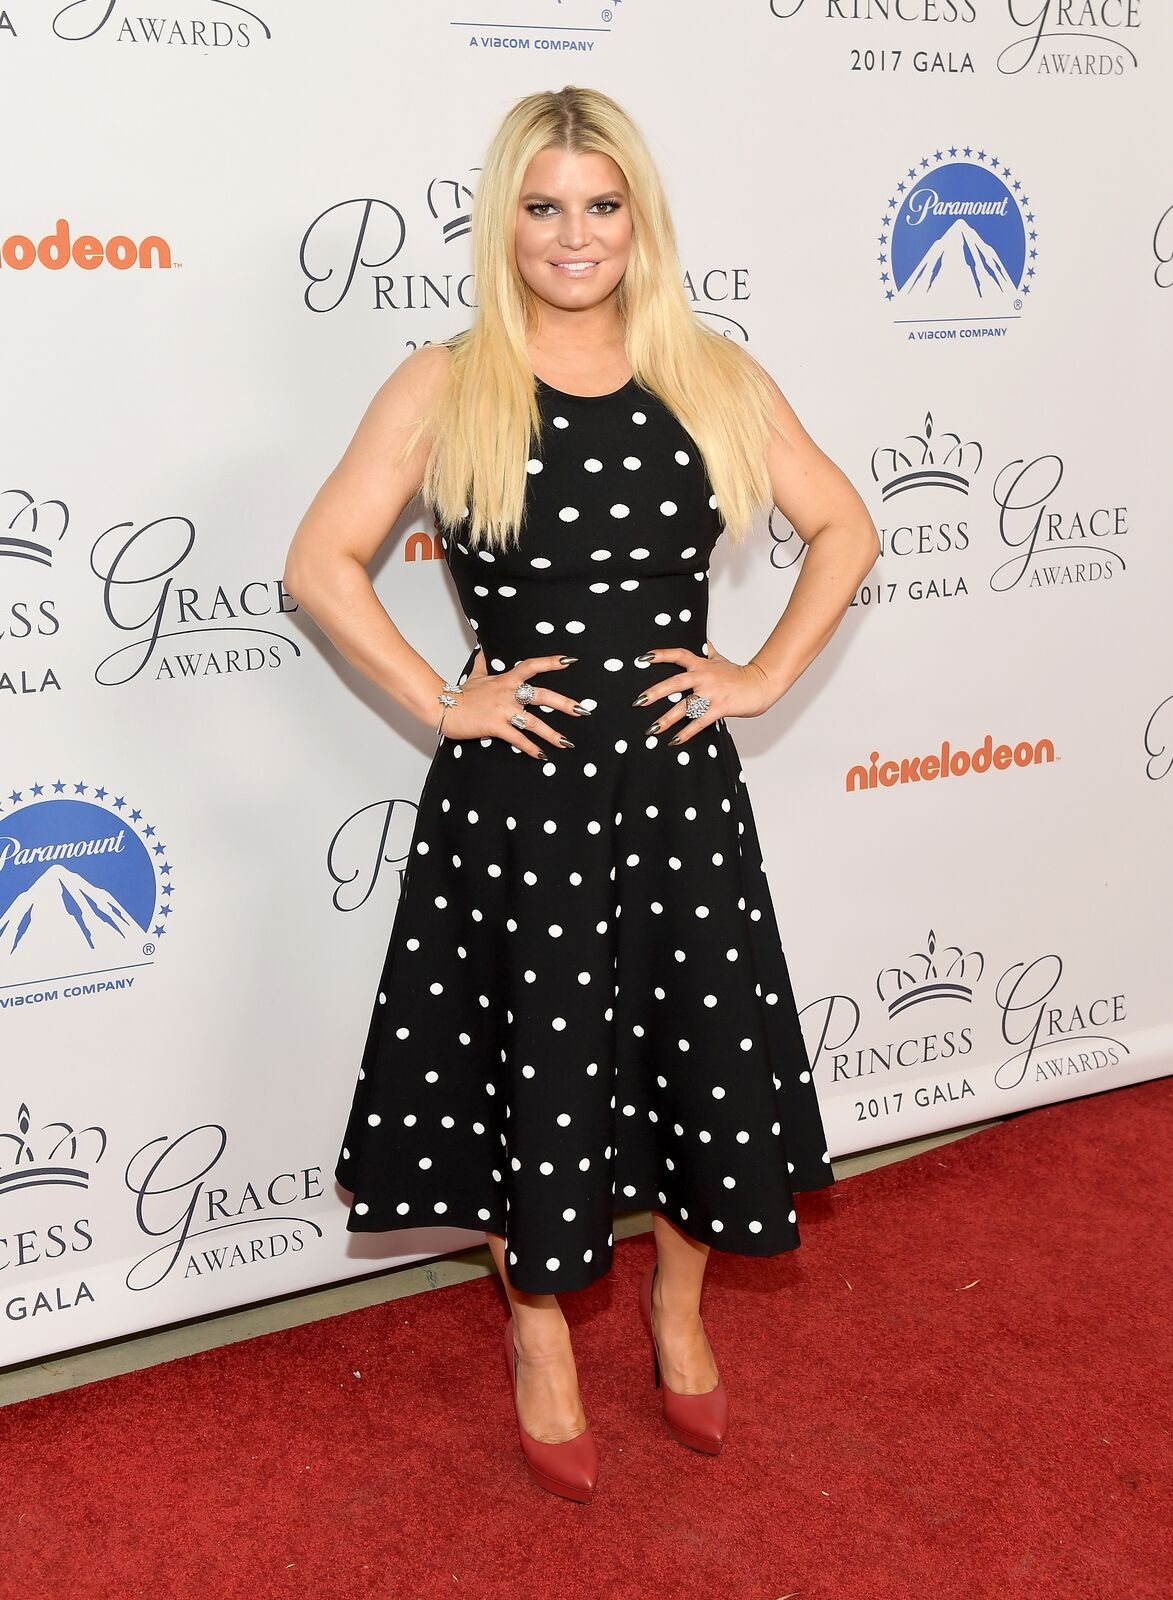 Jessica Simpson attends the 2017 Princess Grace Awards Gala Kick Off Event with a special tribute to Stephen Hillenberg at Paramount Studios on October 24, 2017 in Hollywood, California | Photo: Getty Images